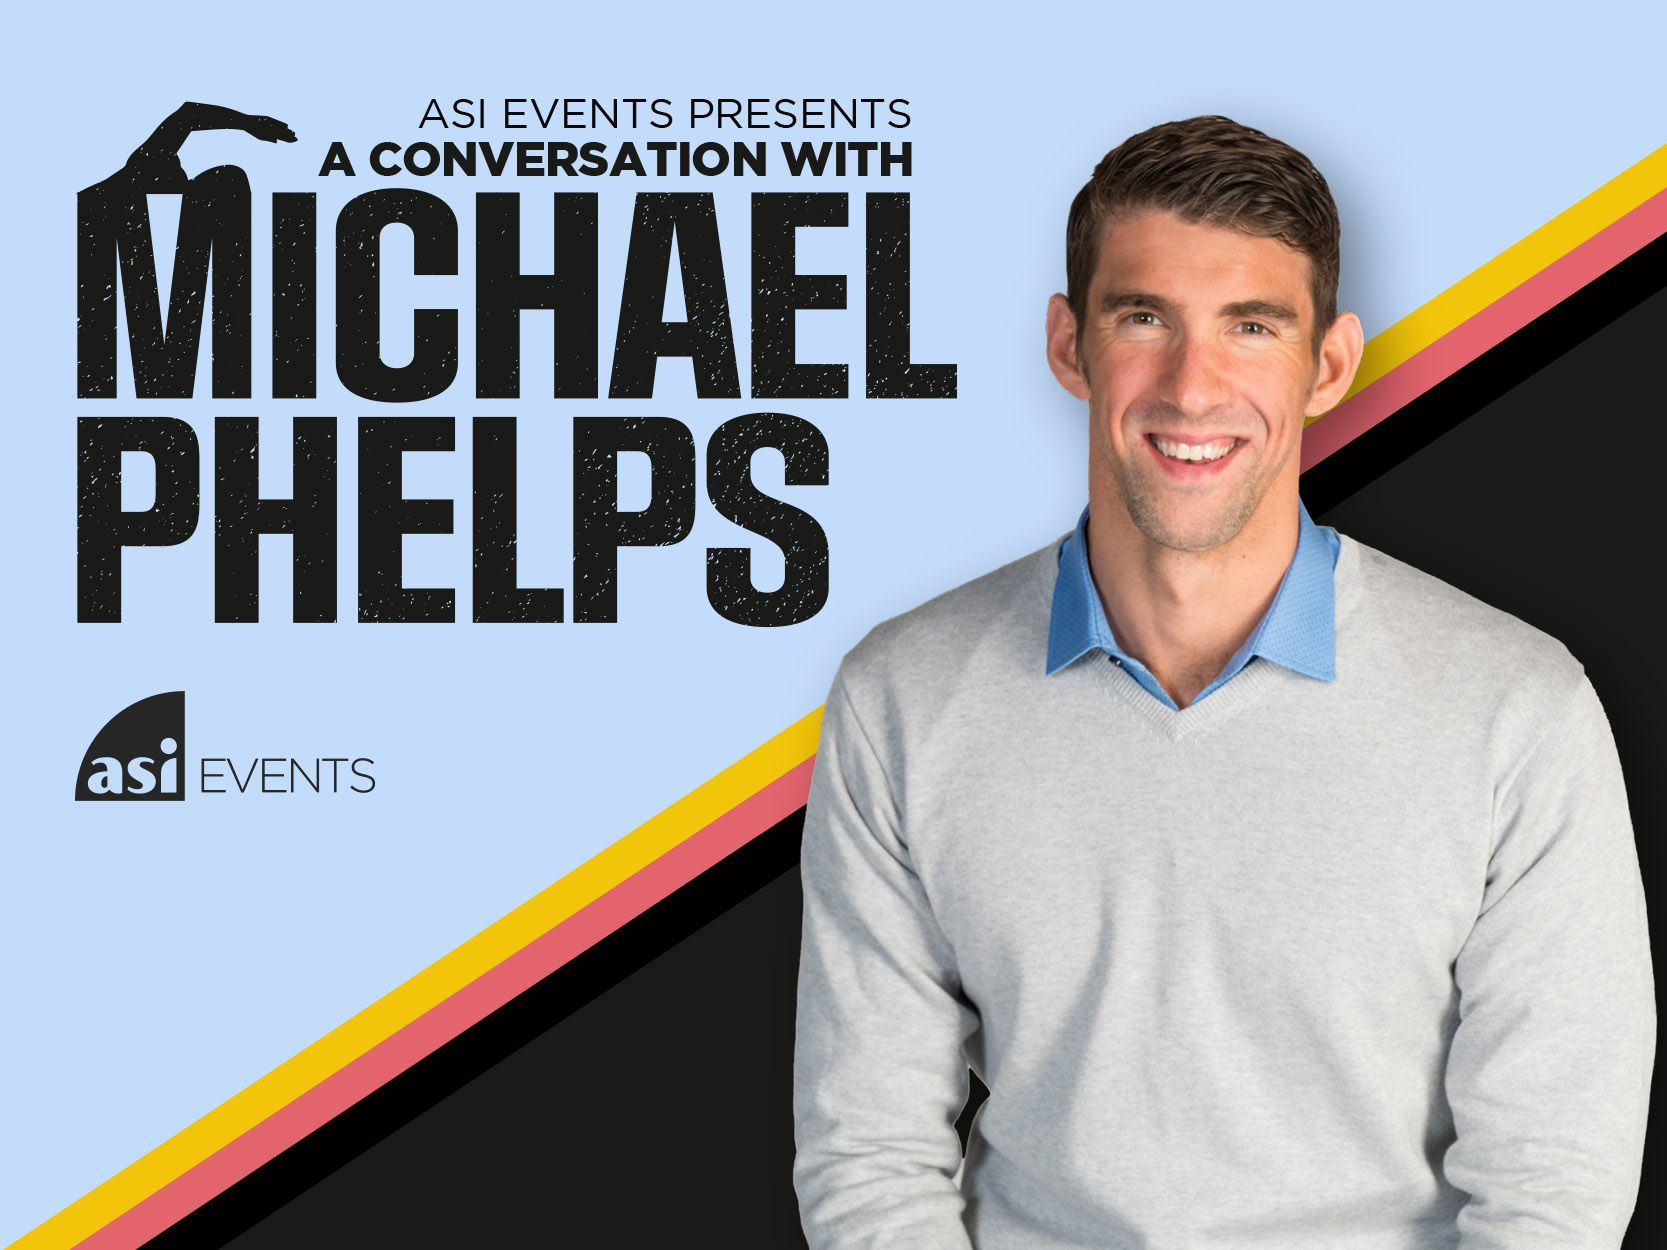 Image of Phelps with the words ASI Events presents a conversation with Michael Phelps